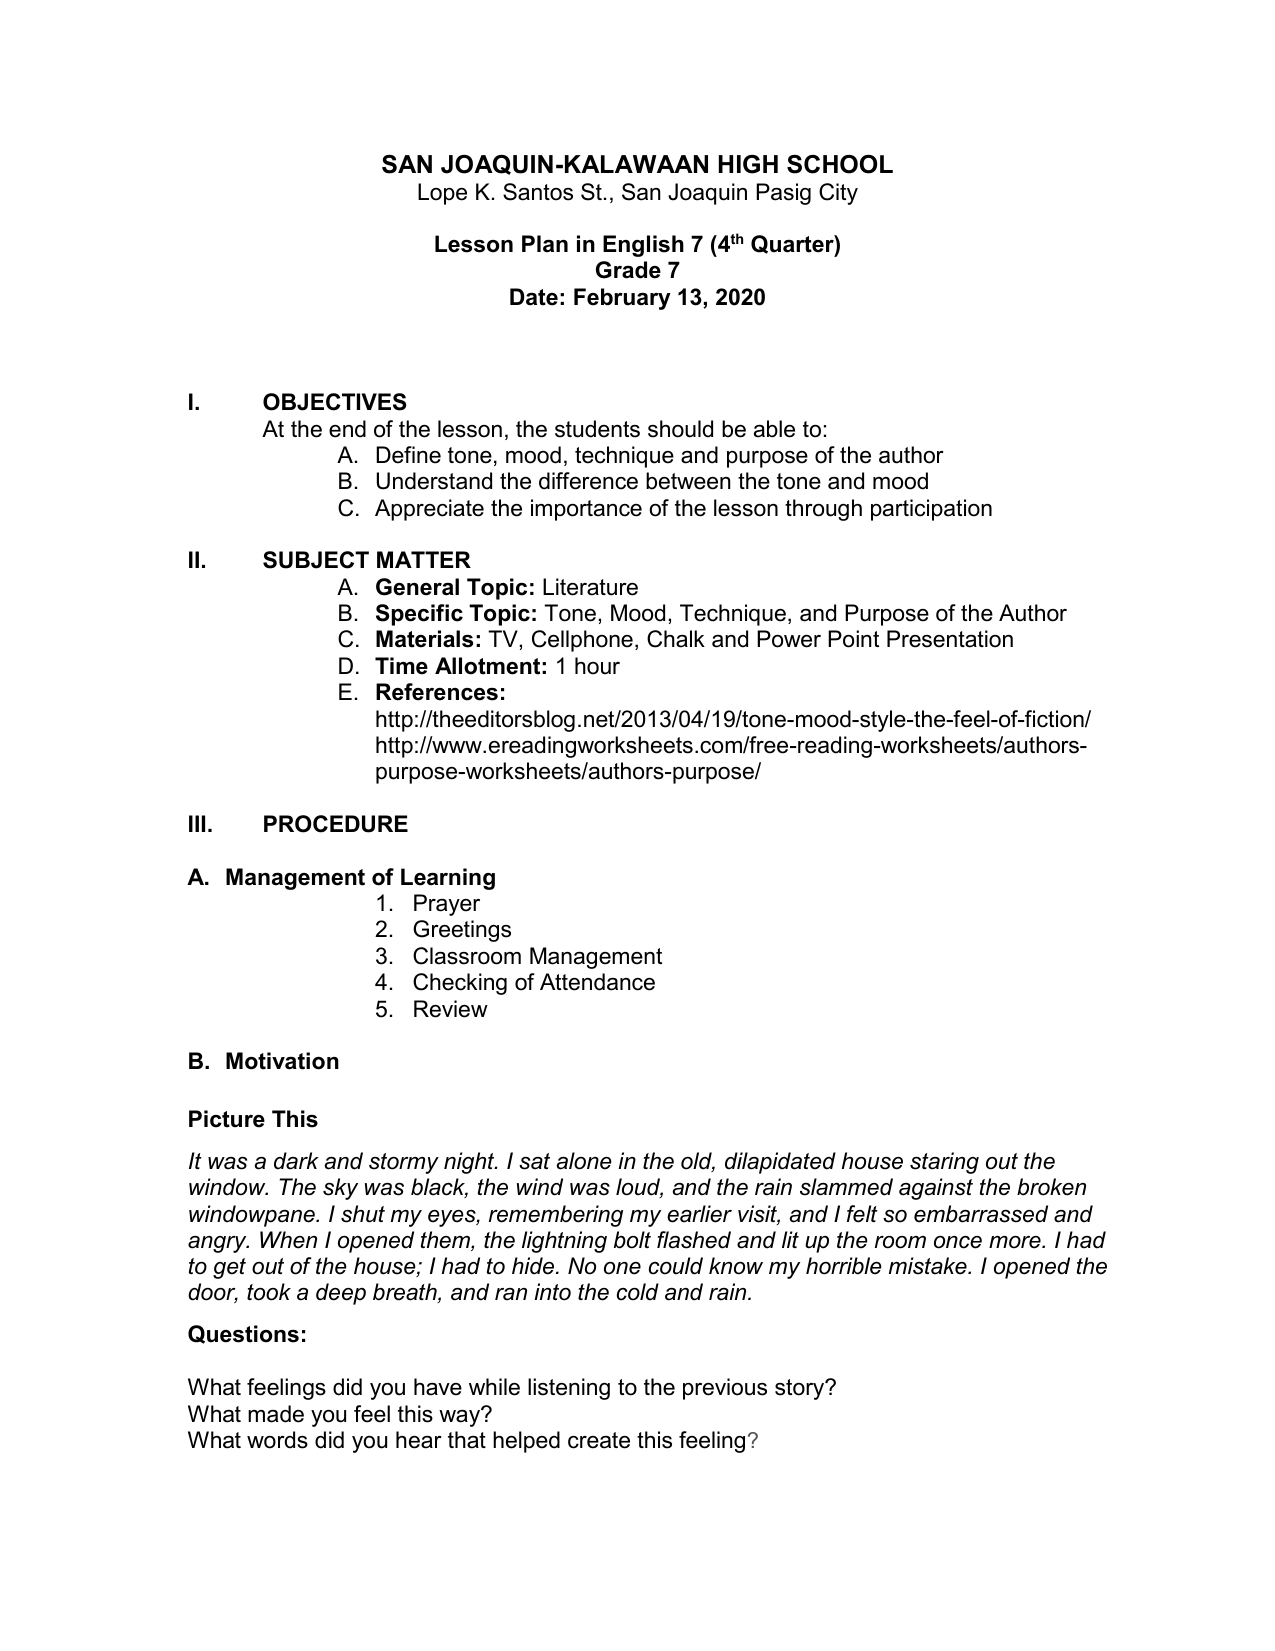 Final Lesson Plan Tone Mood Technique And Purpose Of The Author The mood in english grammar does not refer to the emotion of the action or anything like that. final lesson plan tone mood technique